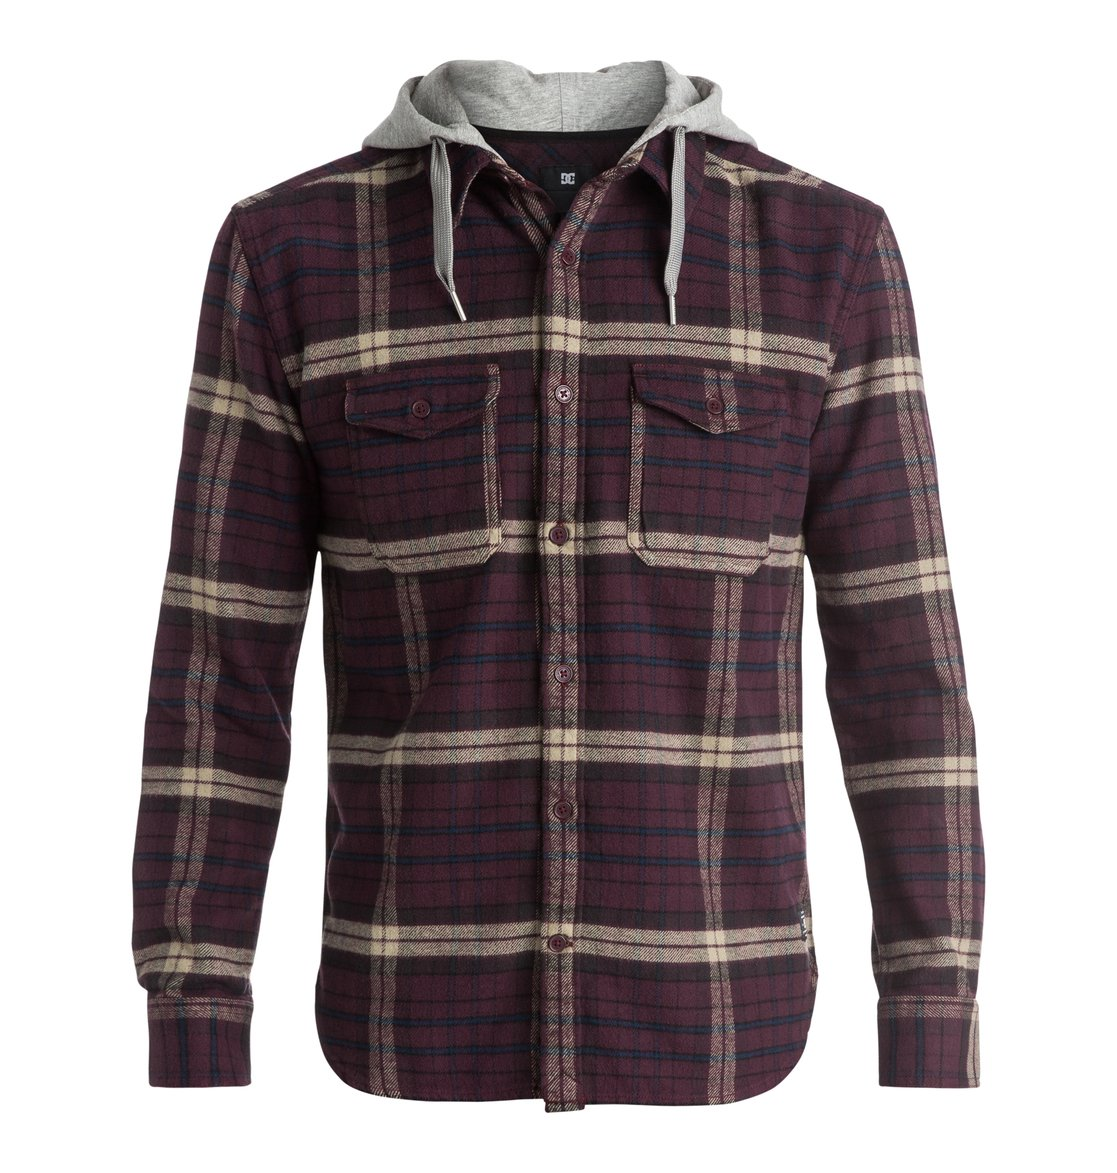 Dcshoes ������� Runnels Flannel � ������� ������� � ���������